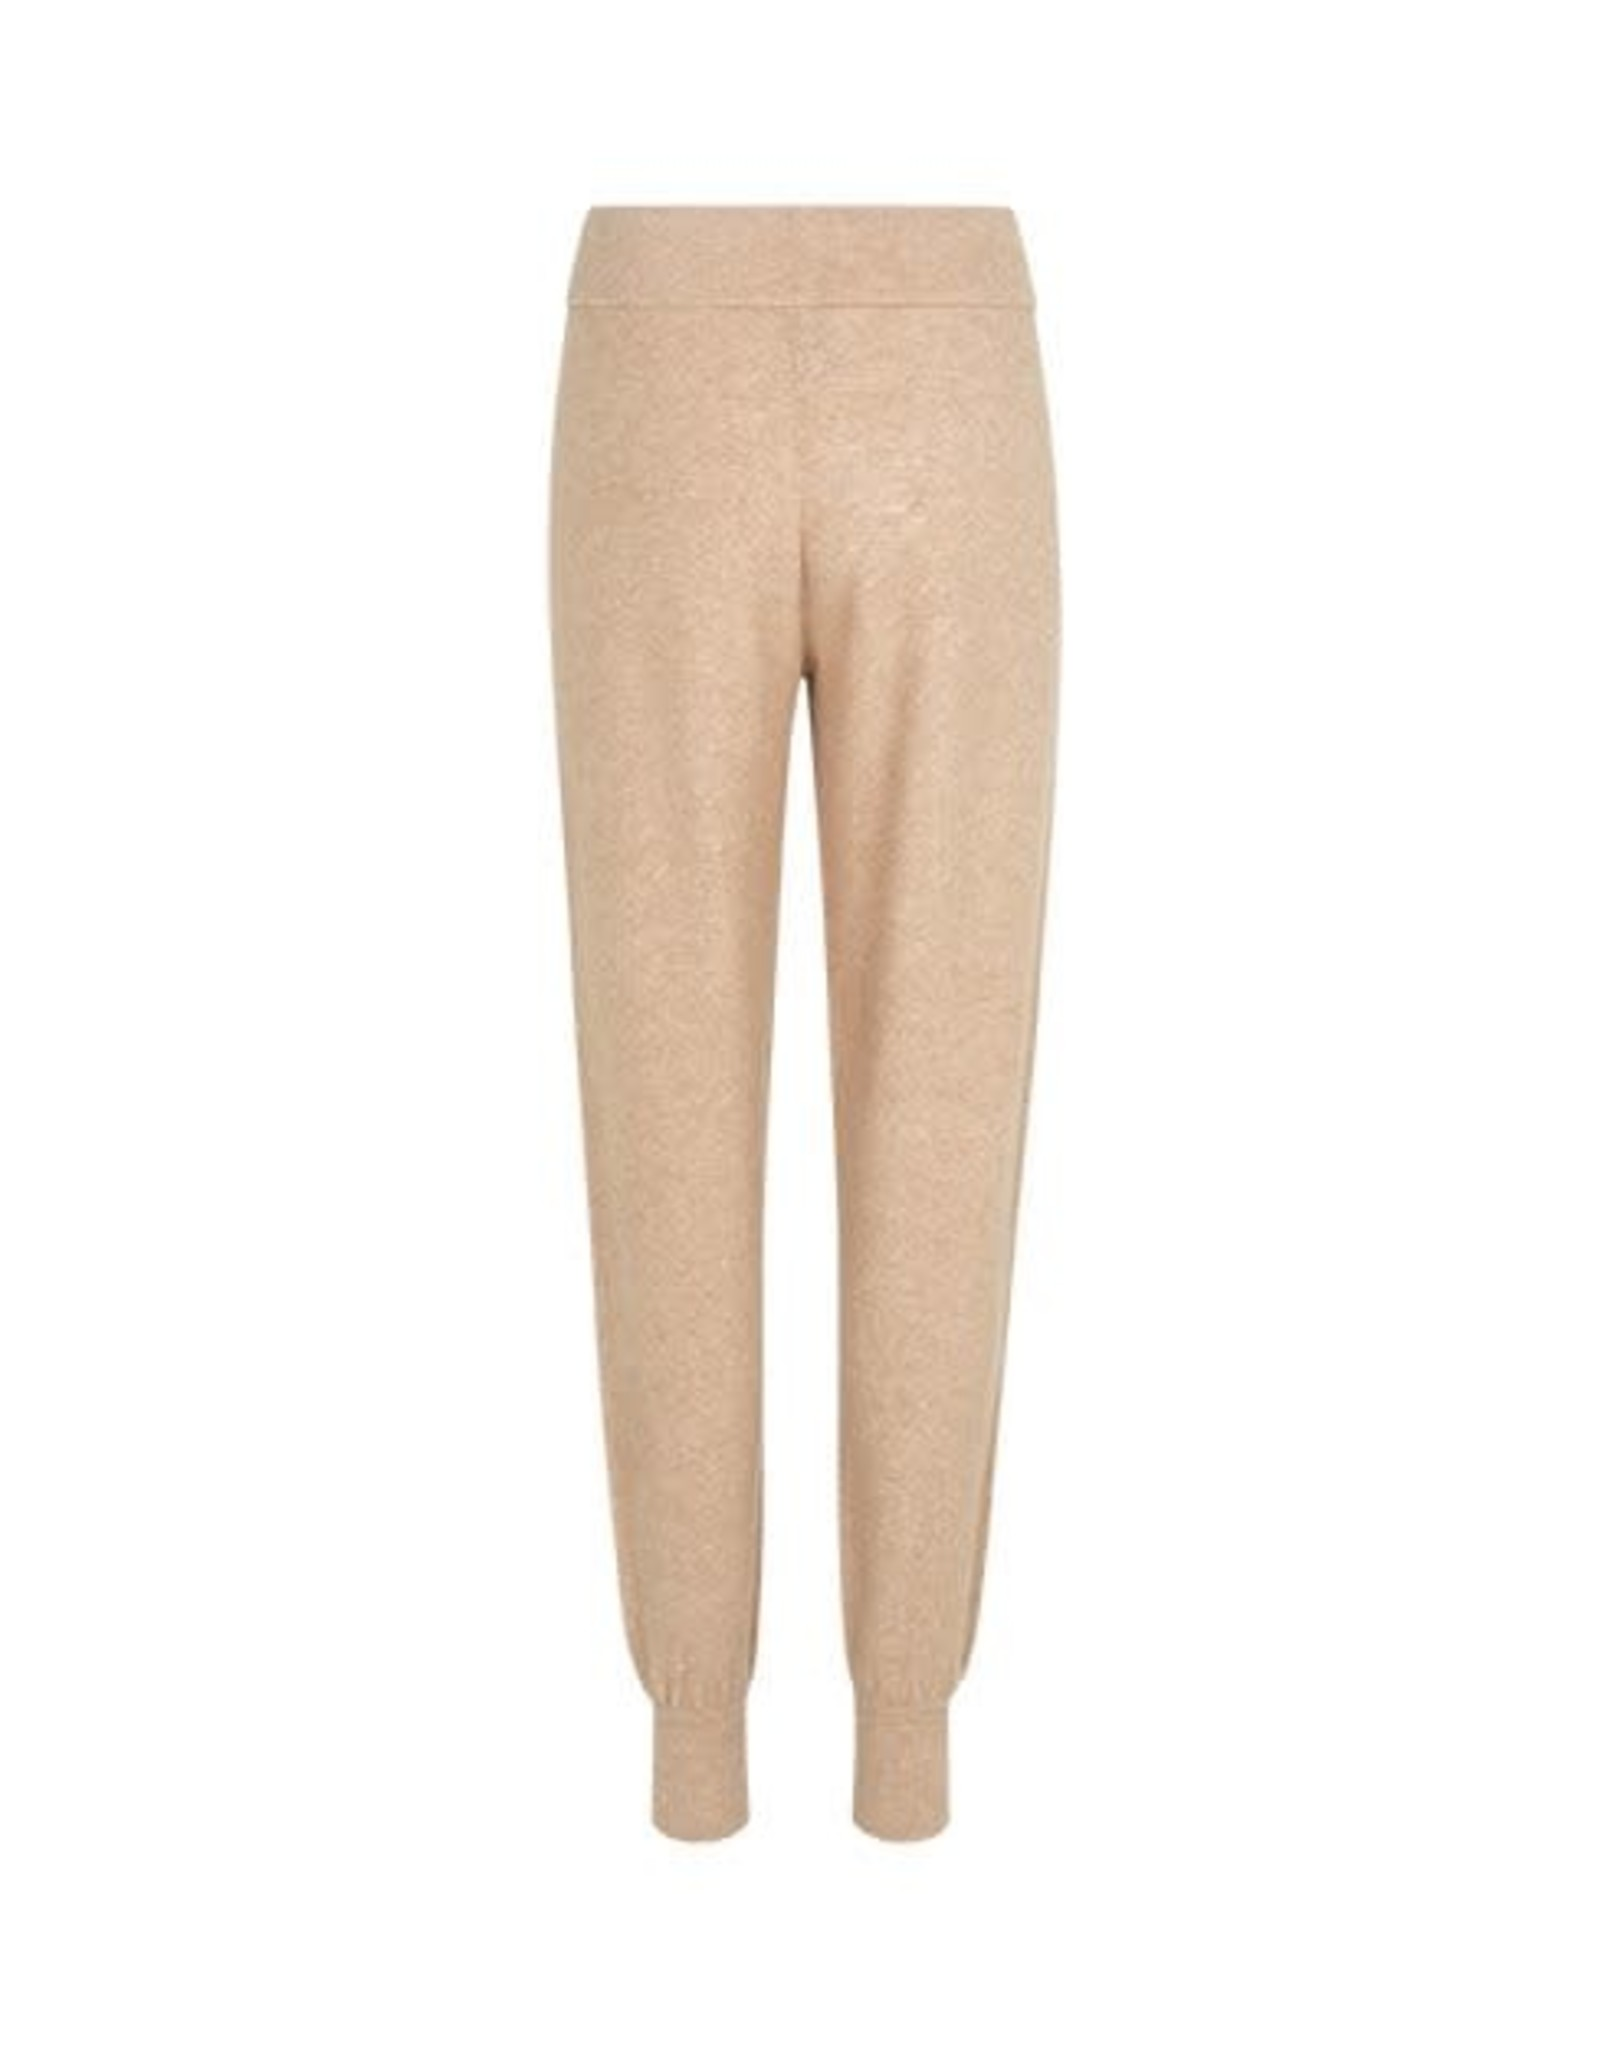 MBYM KNITTED PANTS HELIO